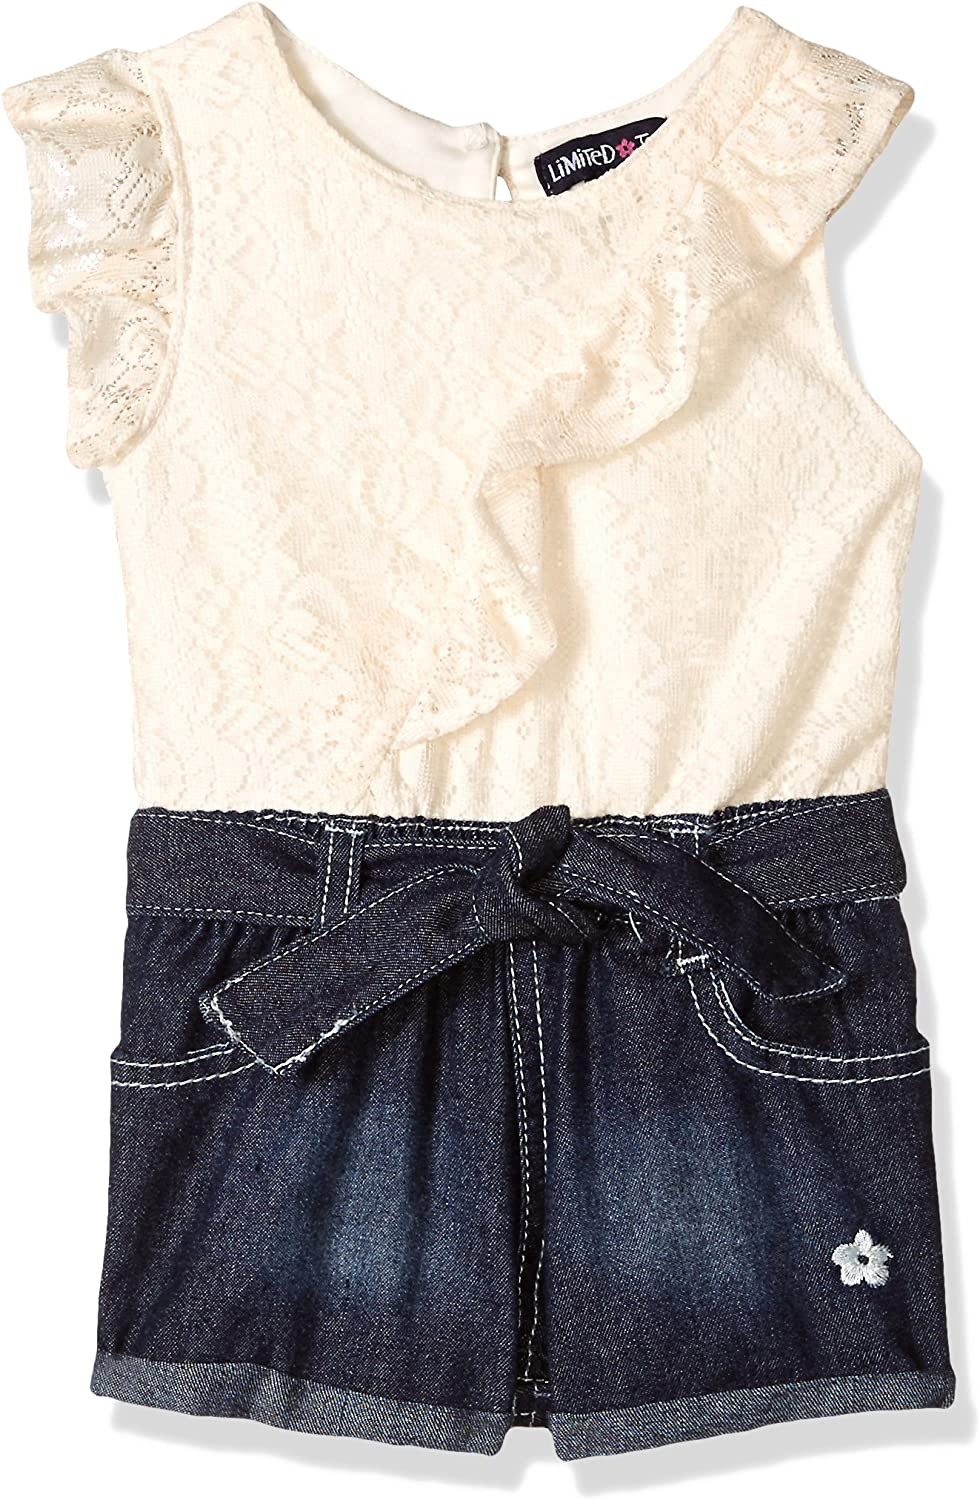 Limited Too Baby Girls 2 Piece Diamond Lace Top and Stretch Denim Short